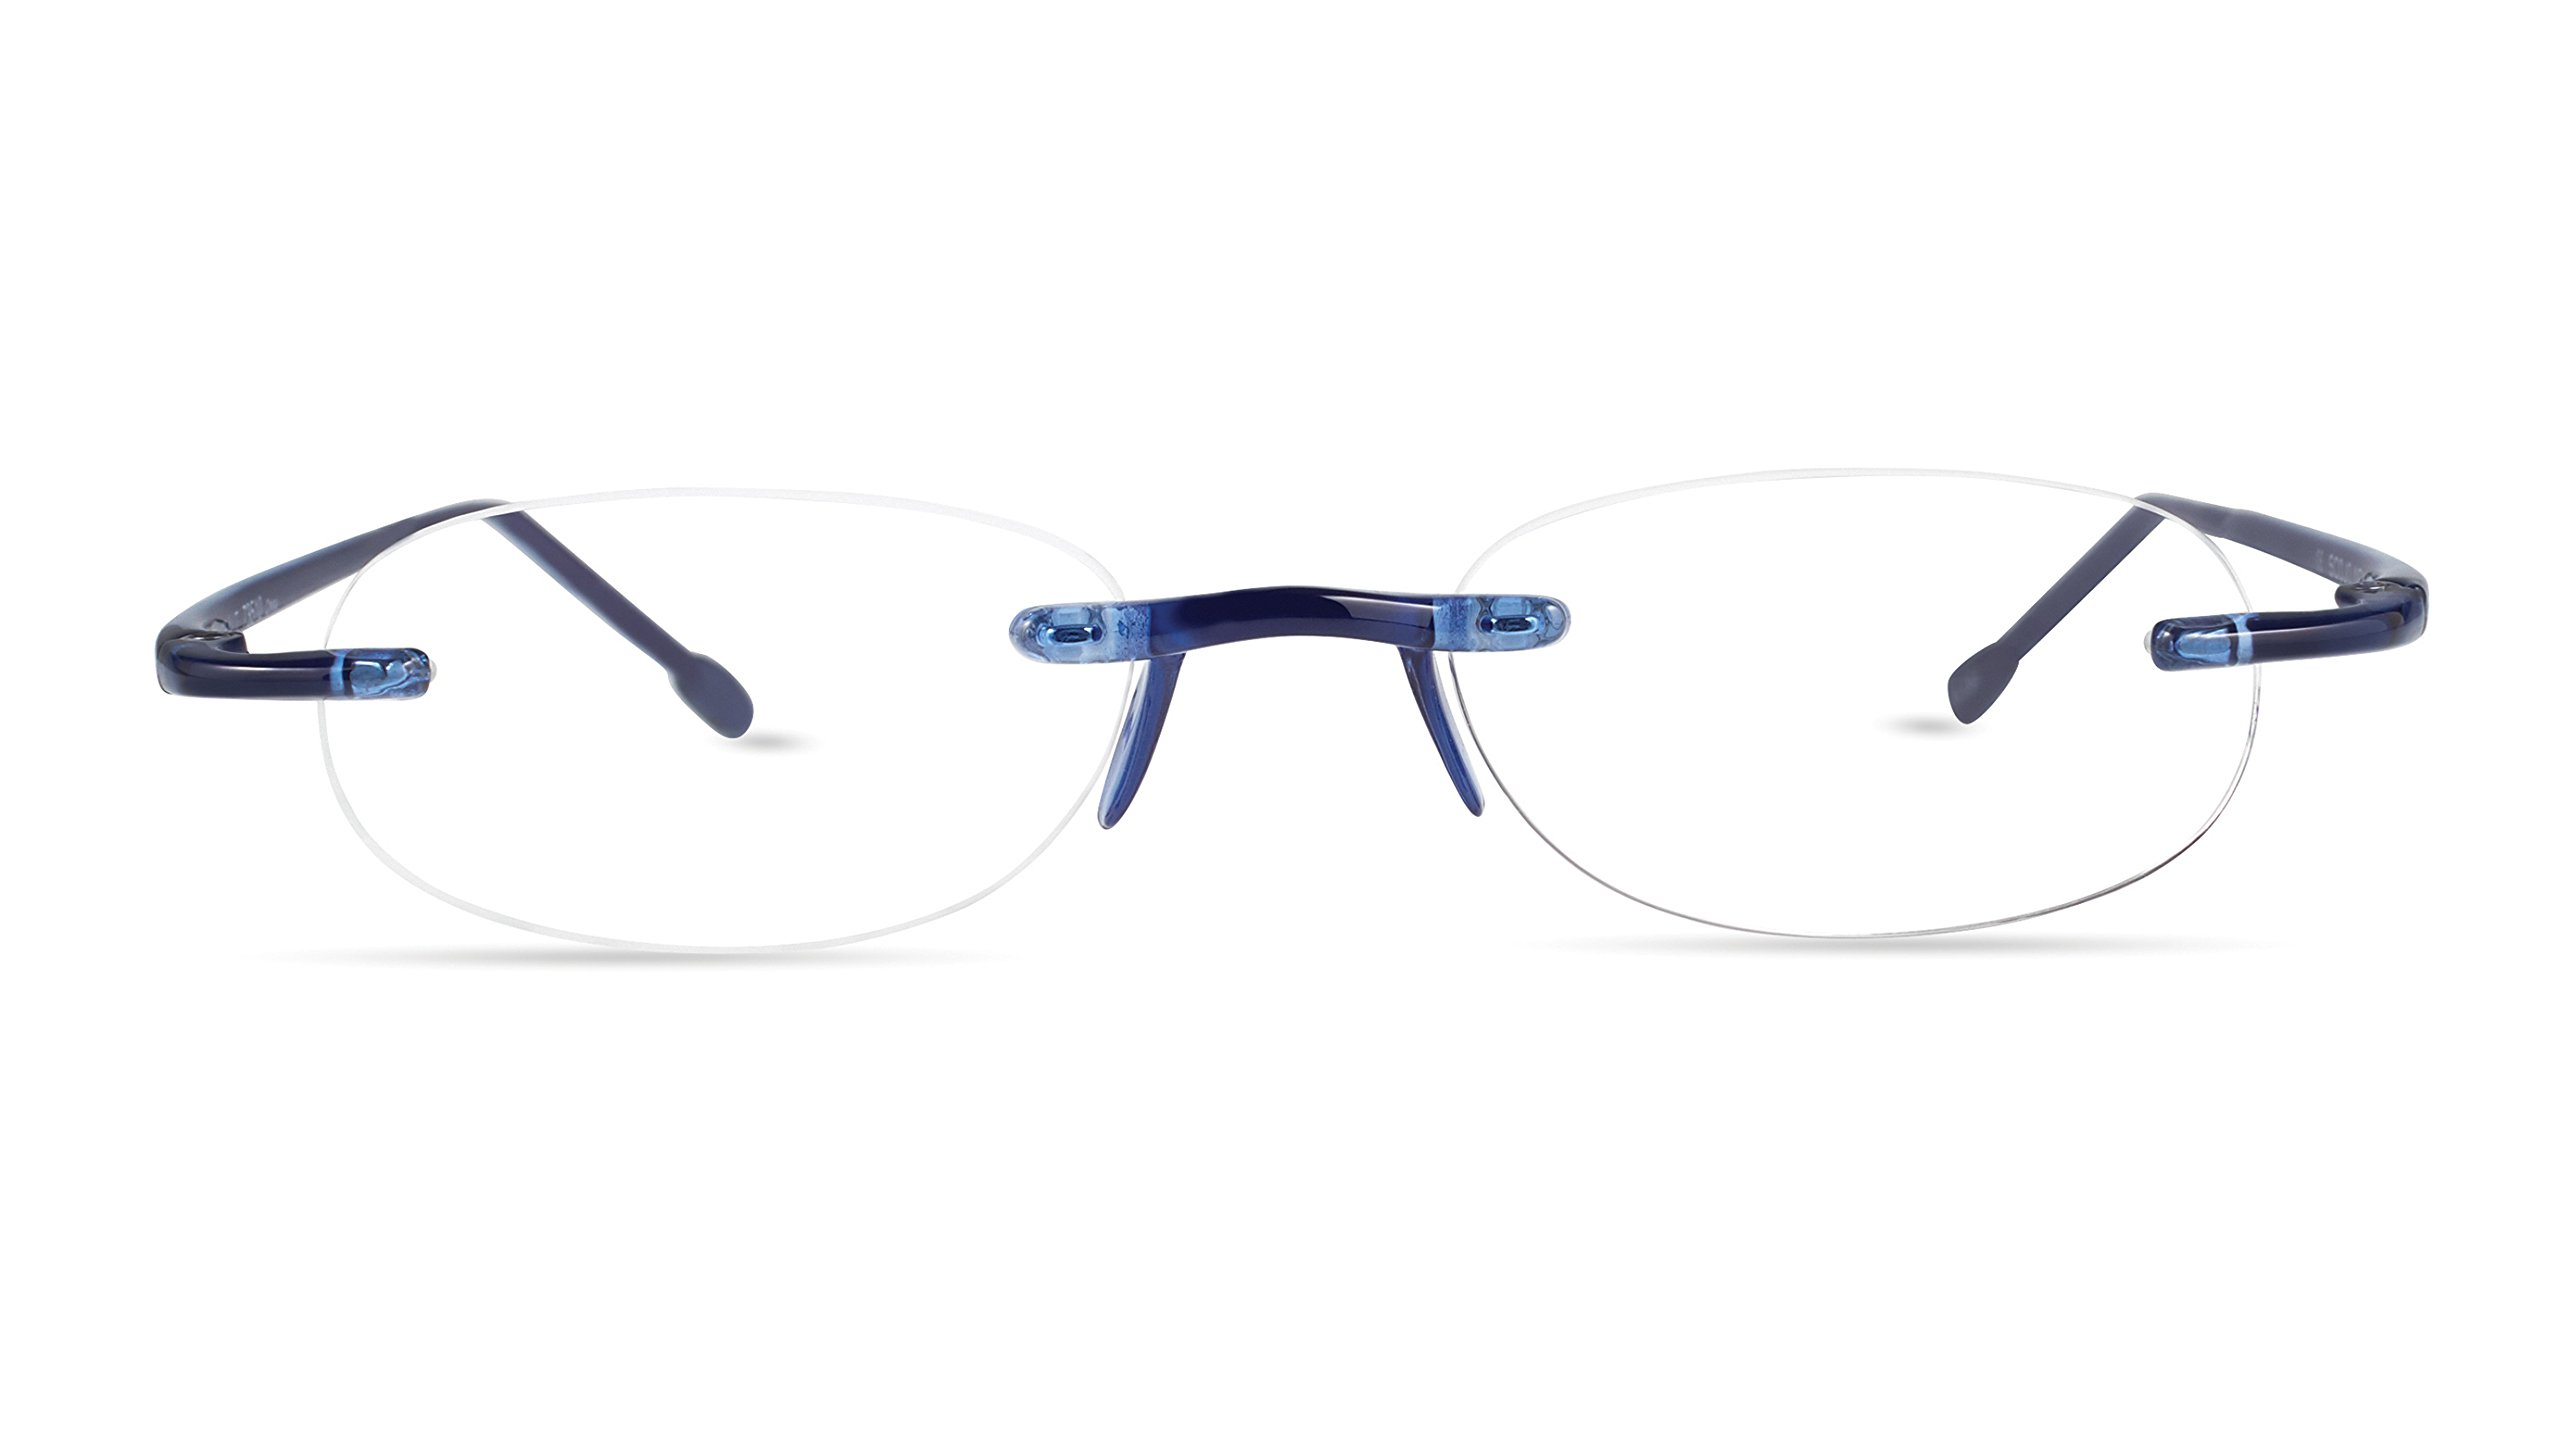 Gels - Lightweight Rimless Fashion Readers - The Original Reading Glasses for Men and Women - Cobalt Blue (+2.50 Magnification Power) by Scojo New York (Image #3)